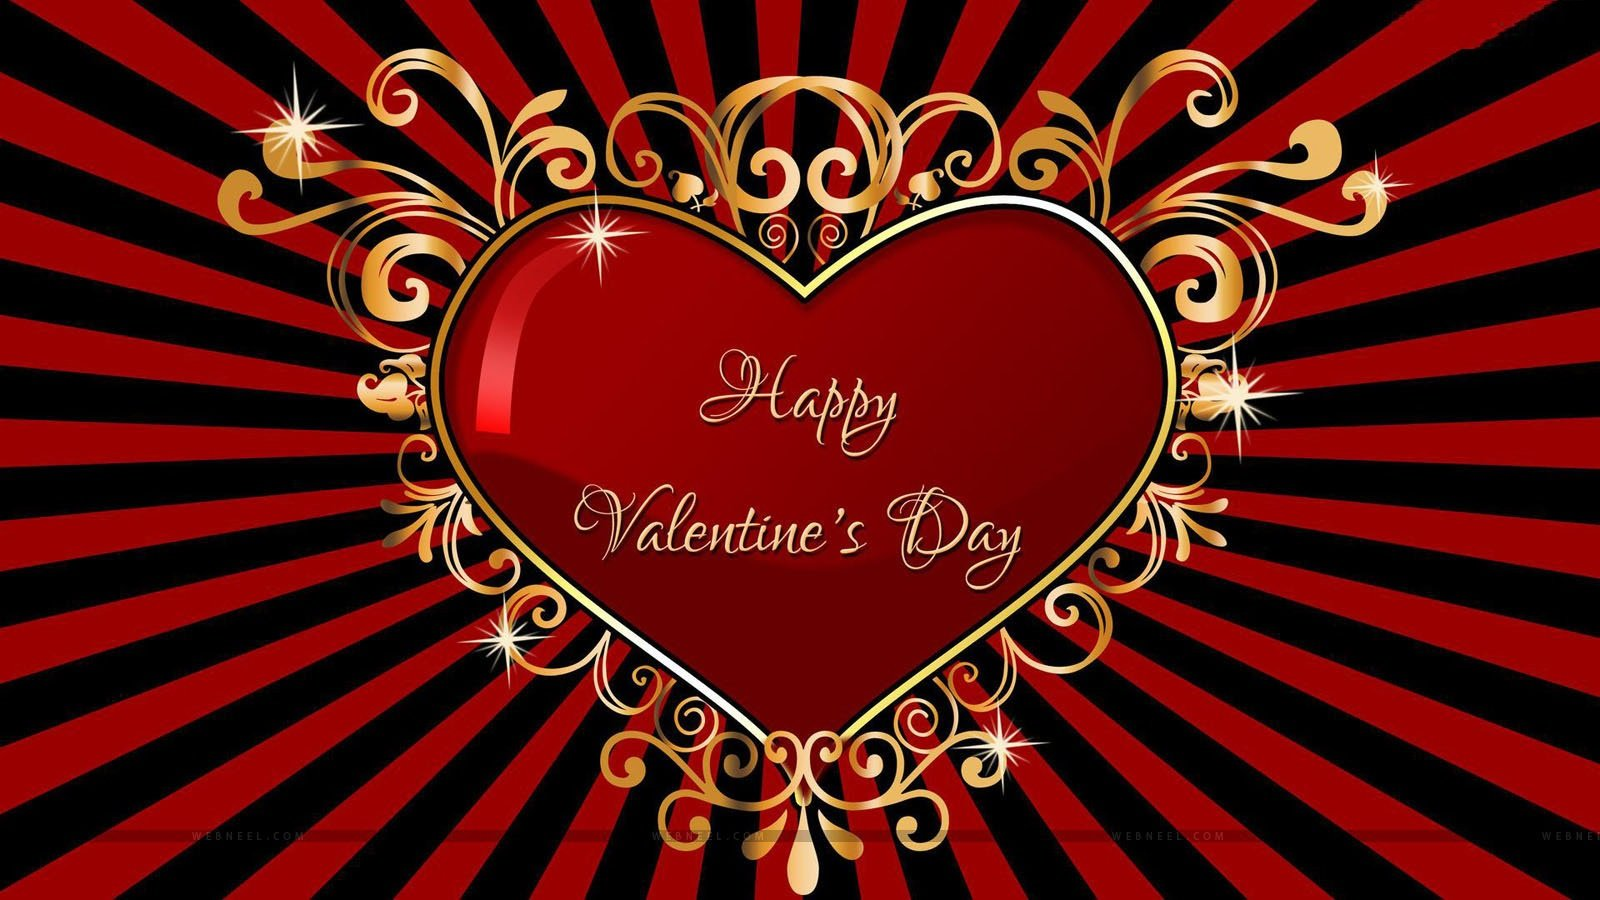 Happy Valentines Day Quotes With Images amp Whatsapp Status 1600x900